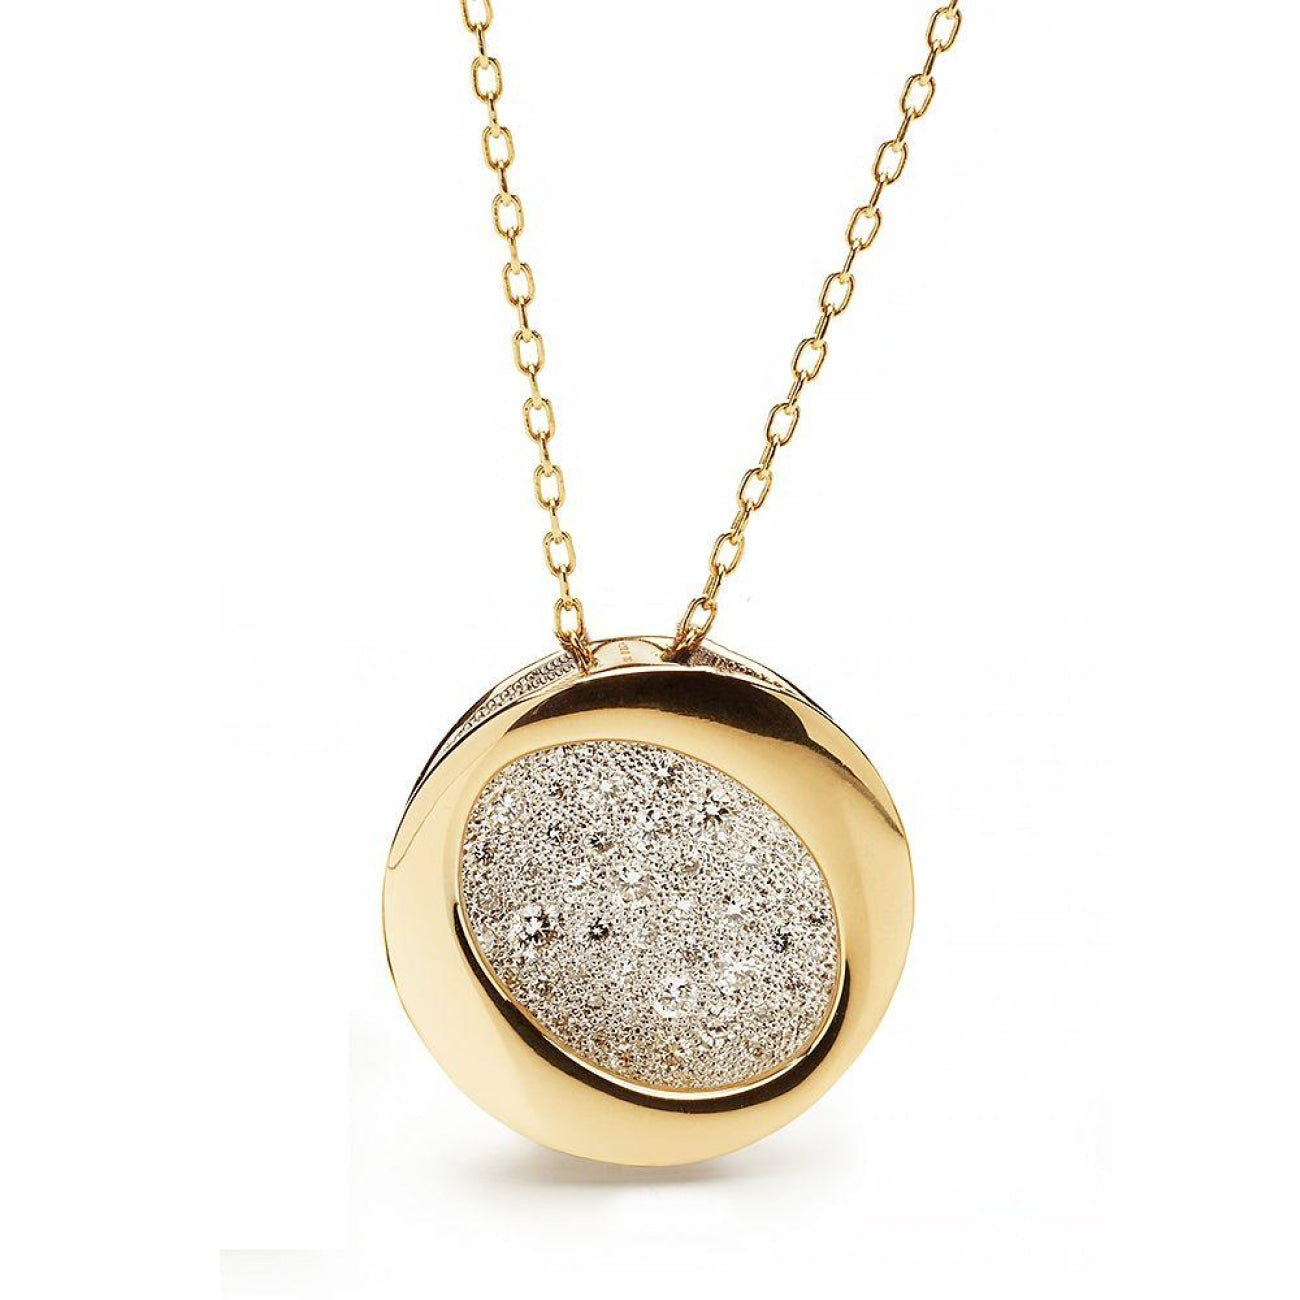 Antonini Jewelry - ATOLLI PENDANT | Manfredi Jewels